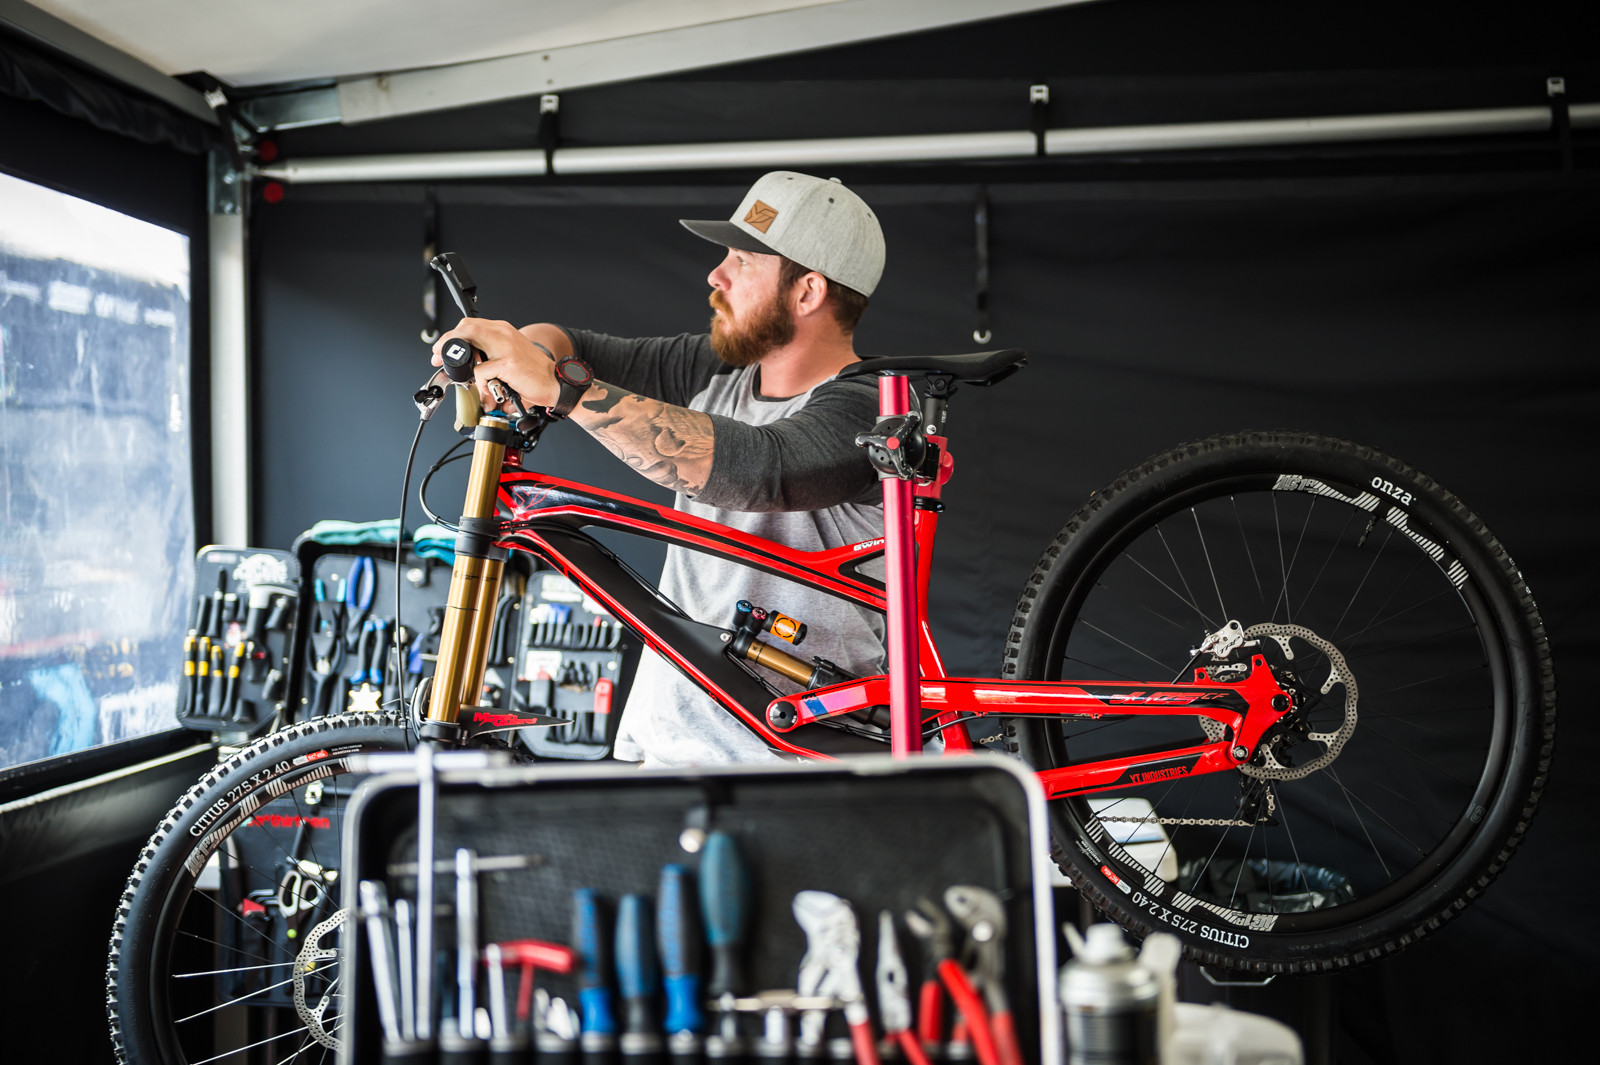 Aaron Gwin's YT Tues - PIT BITS - 2016 Lourdes World Cup Downhill - Mountain Biking Pictures - Vital MTB